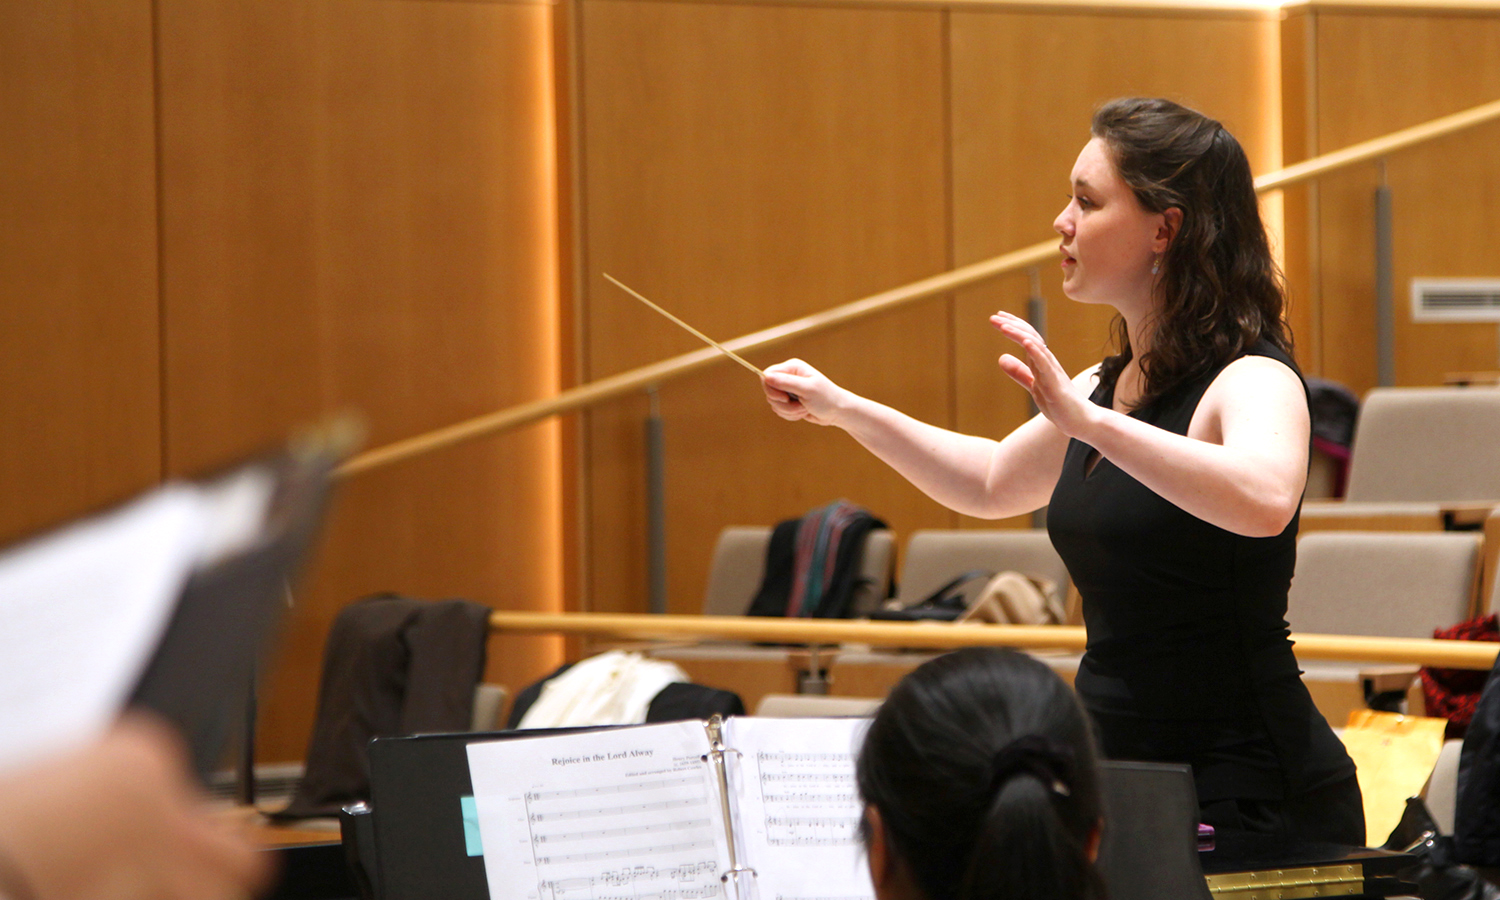 Elena Parkins '18 conducts a recital in Froelich Hall as part of her yearlong Honors project in choral conducting.